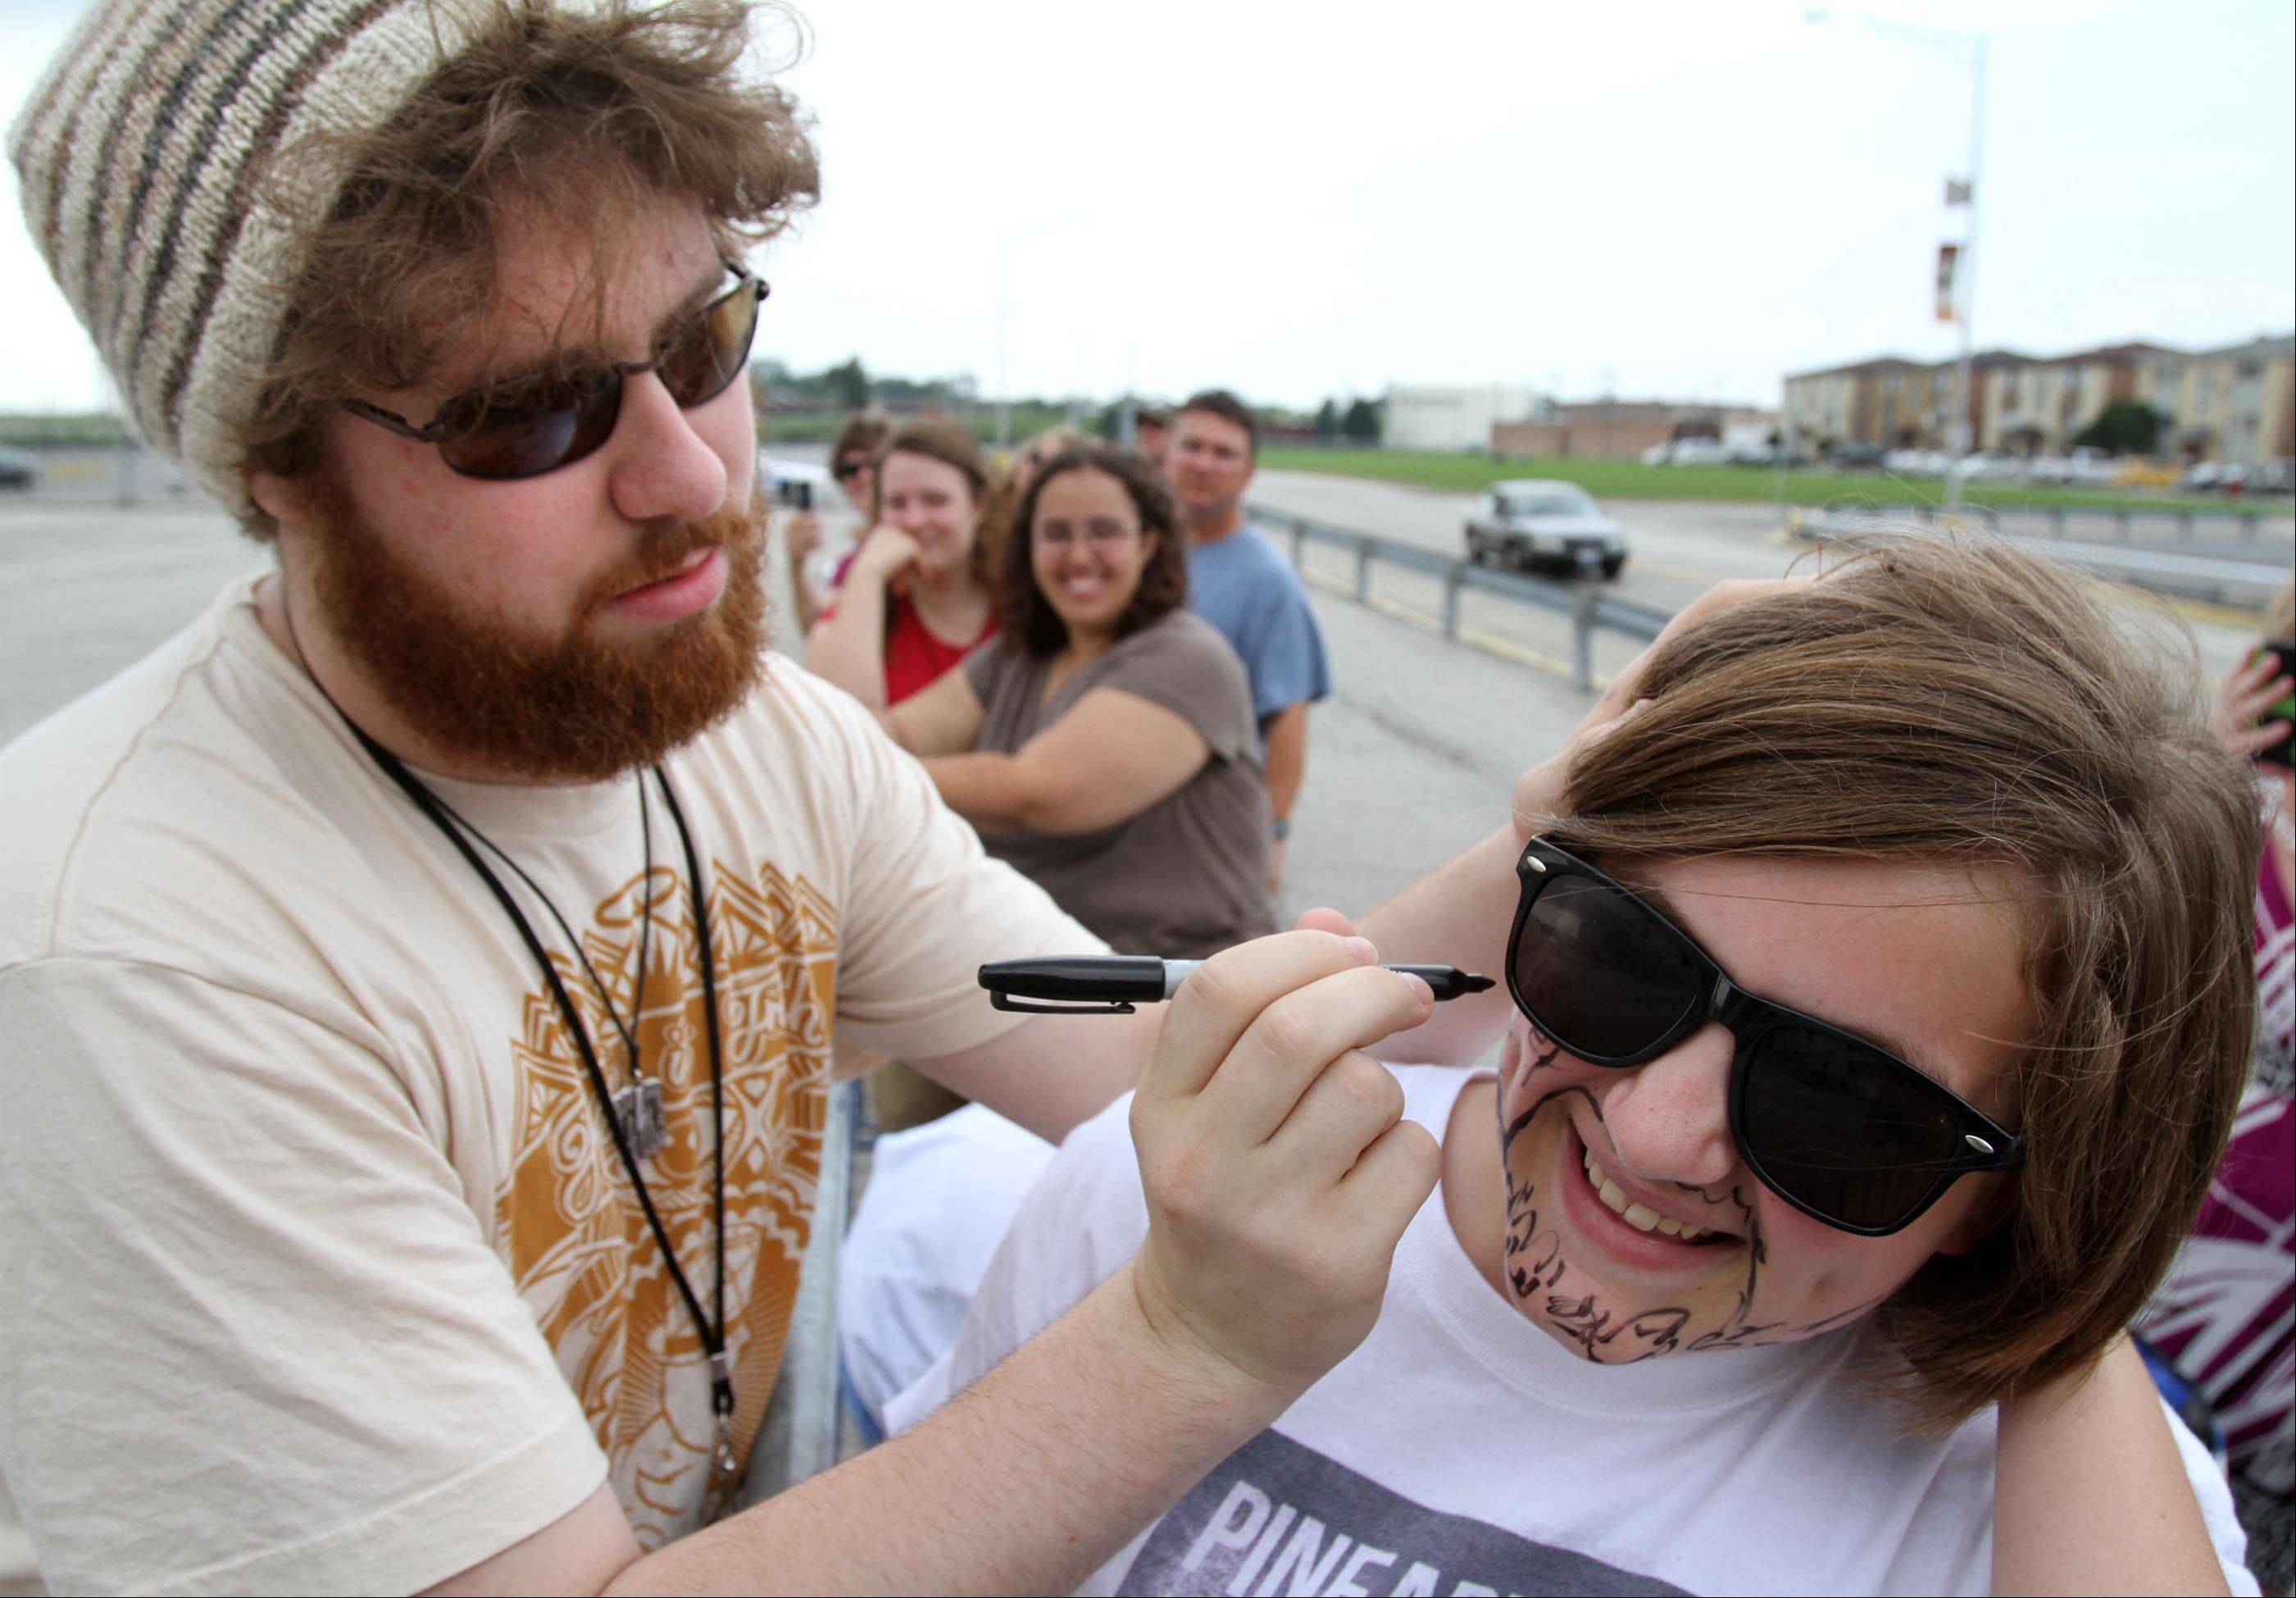 Angela Rublaitus, 13, of Hoffman Estates, has Casey Abrams autograph and draw on her face.